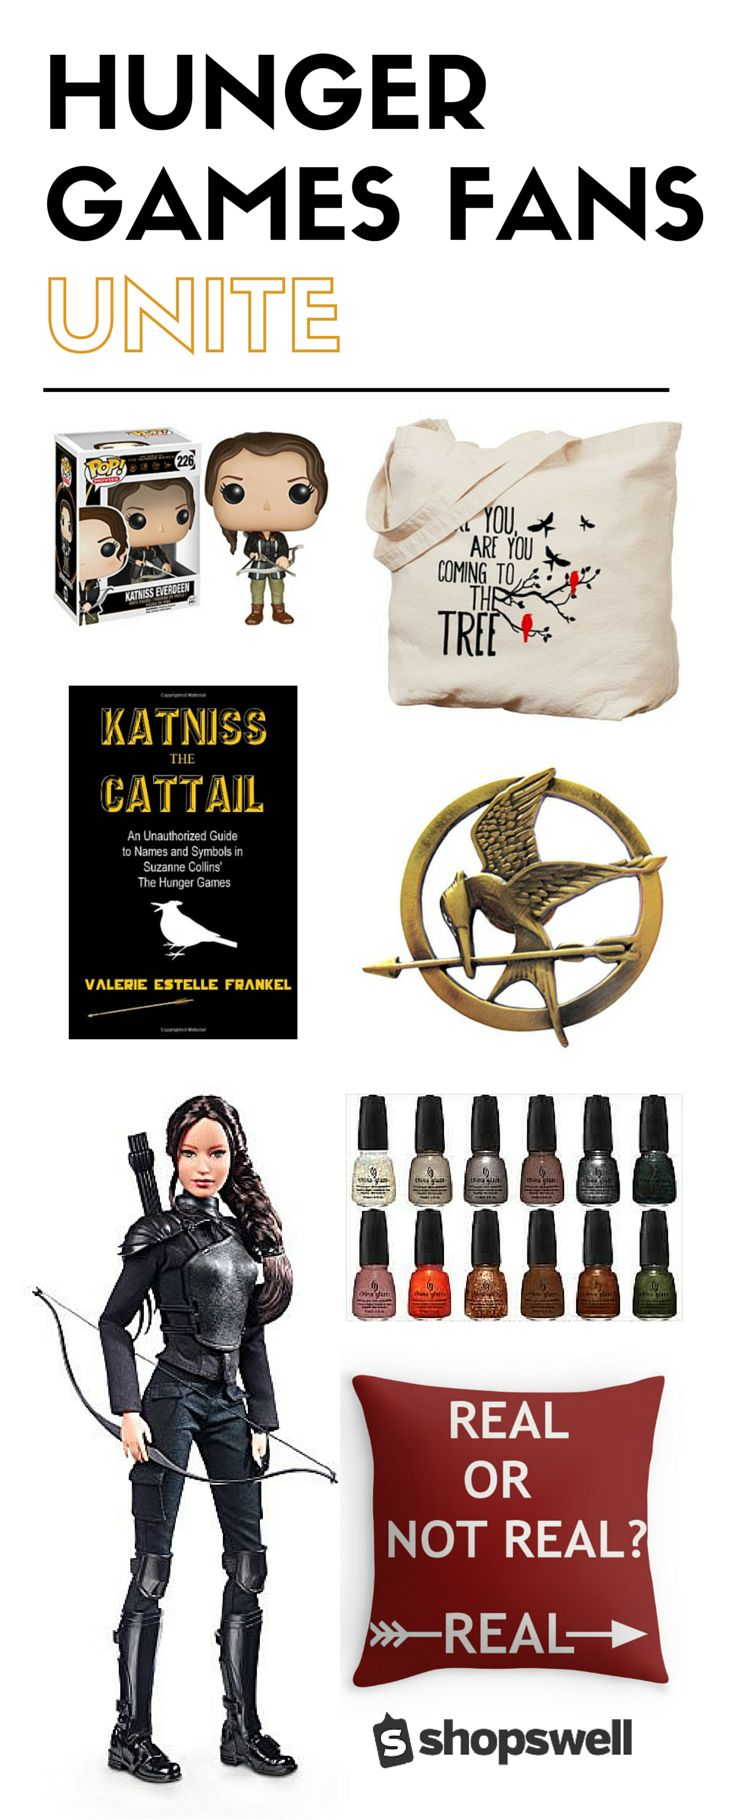 Have a thing for Katniss and Peeta? We get it! Here are 12 Hunger Games gifts fans can't get enough of.